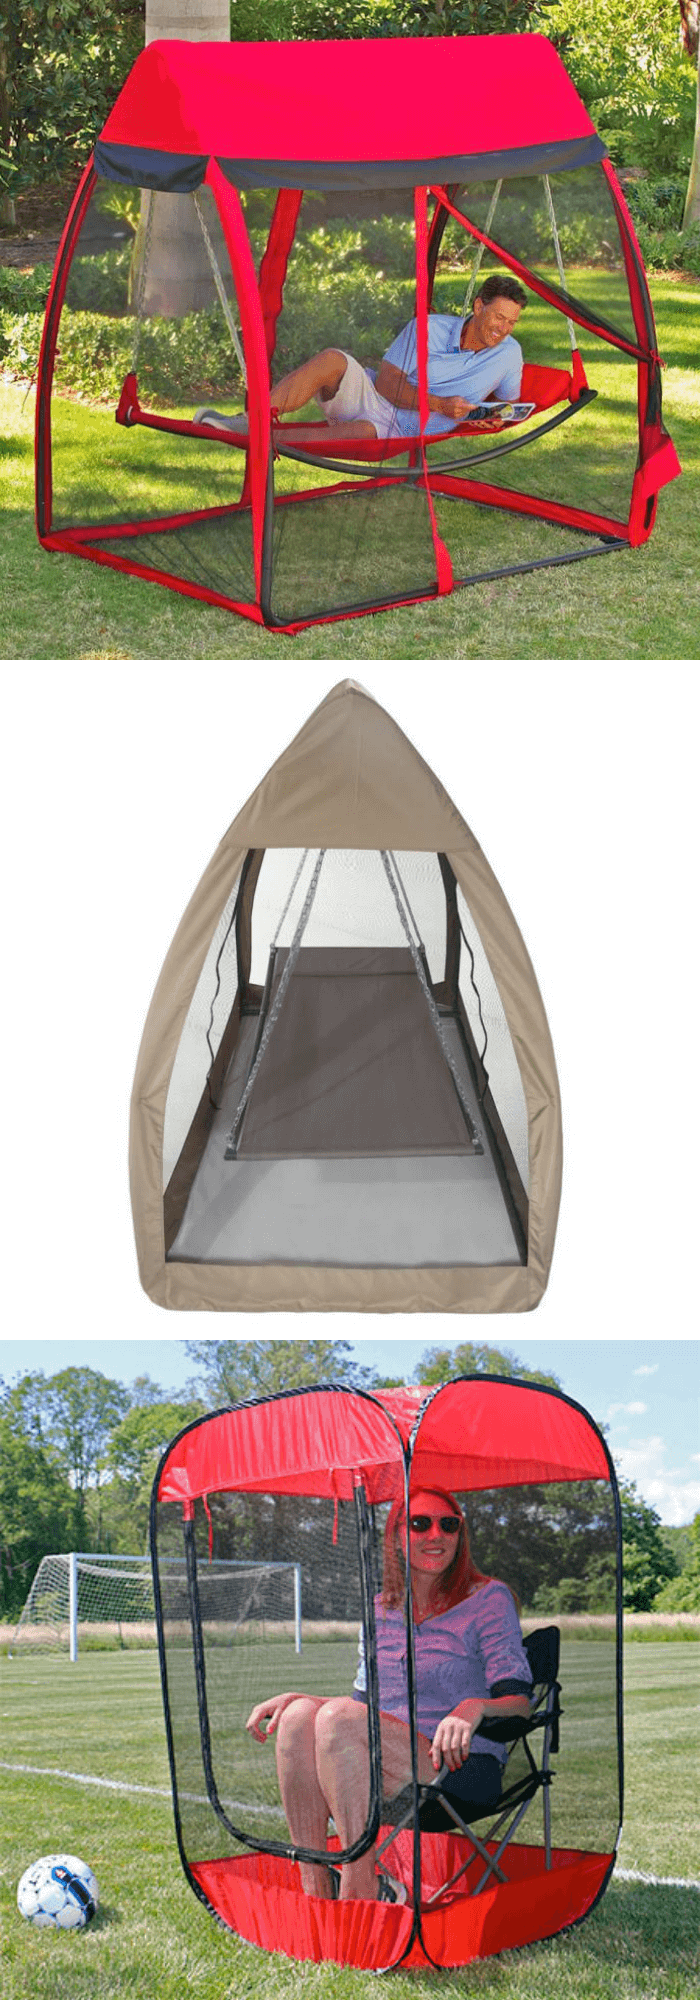 best backyard hammock ideas Bug-Stopping Backyard Hammocks